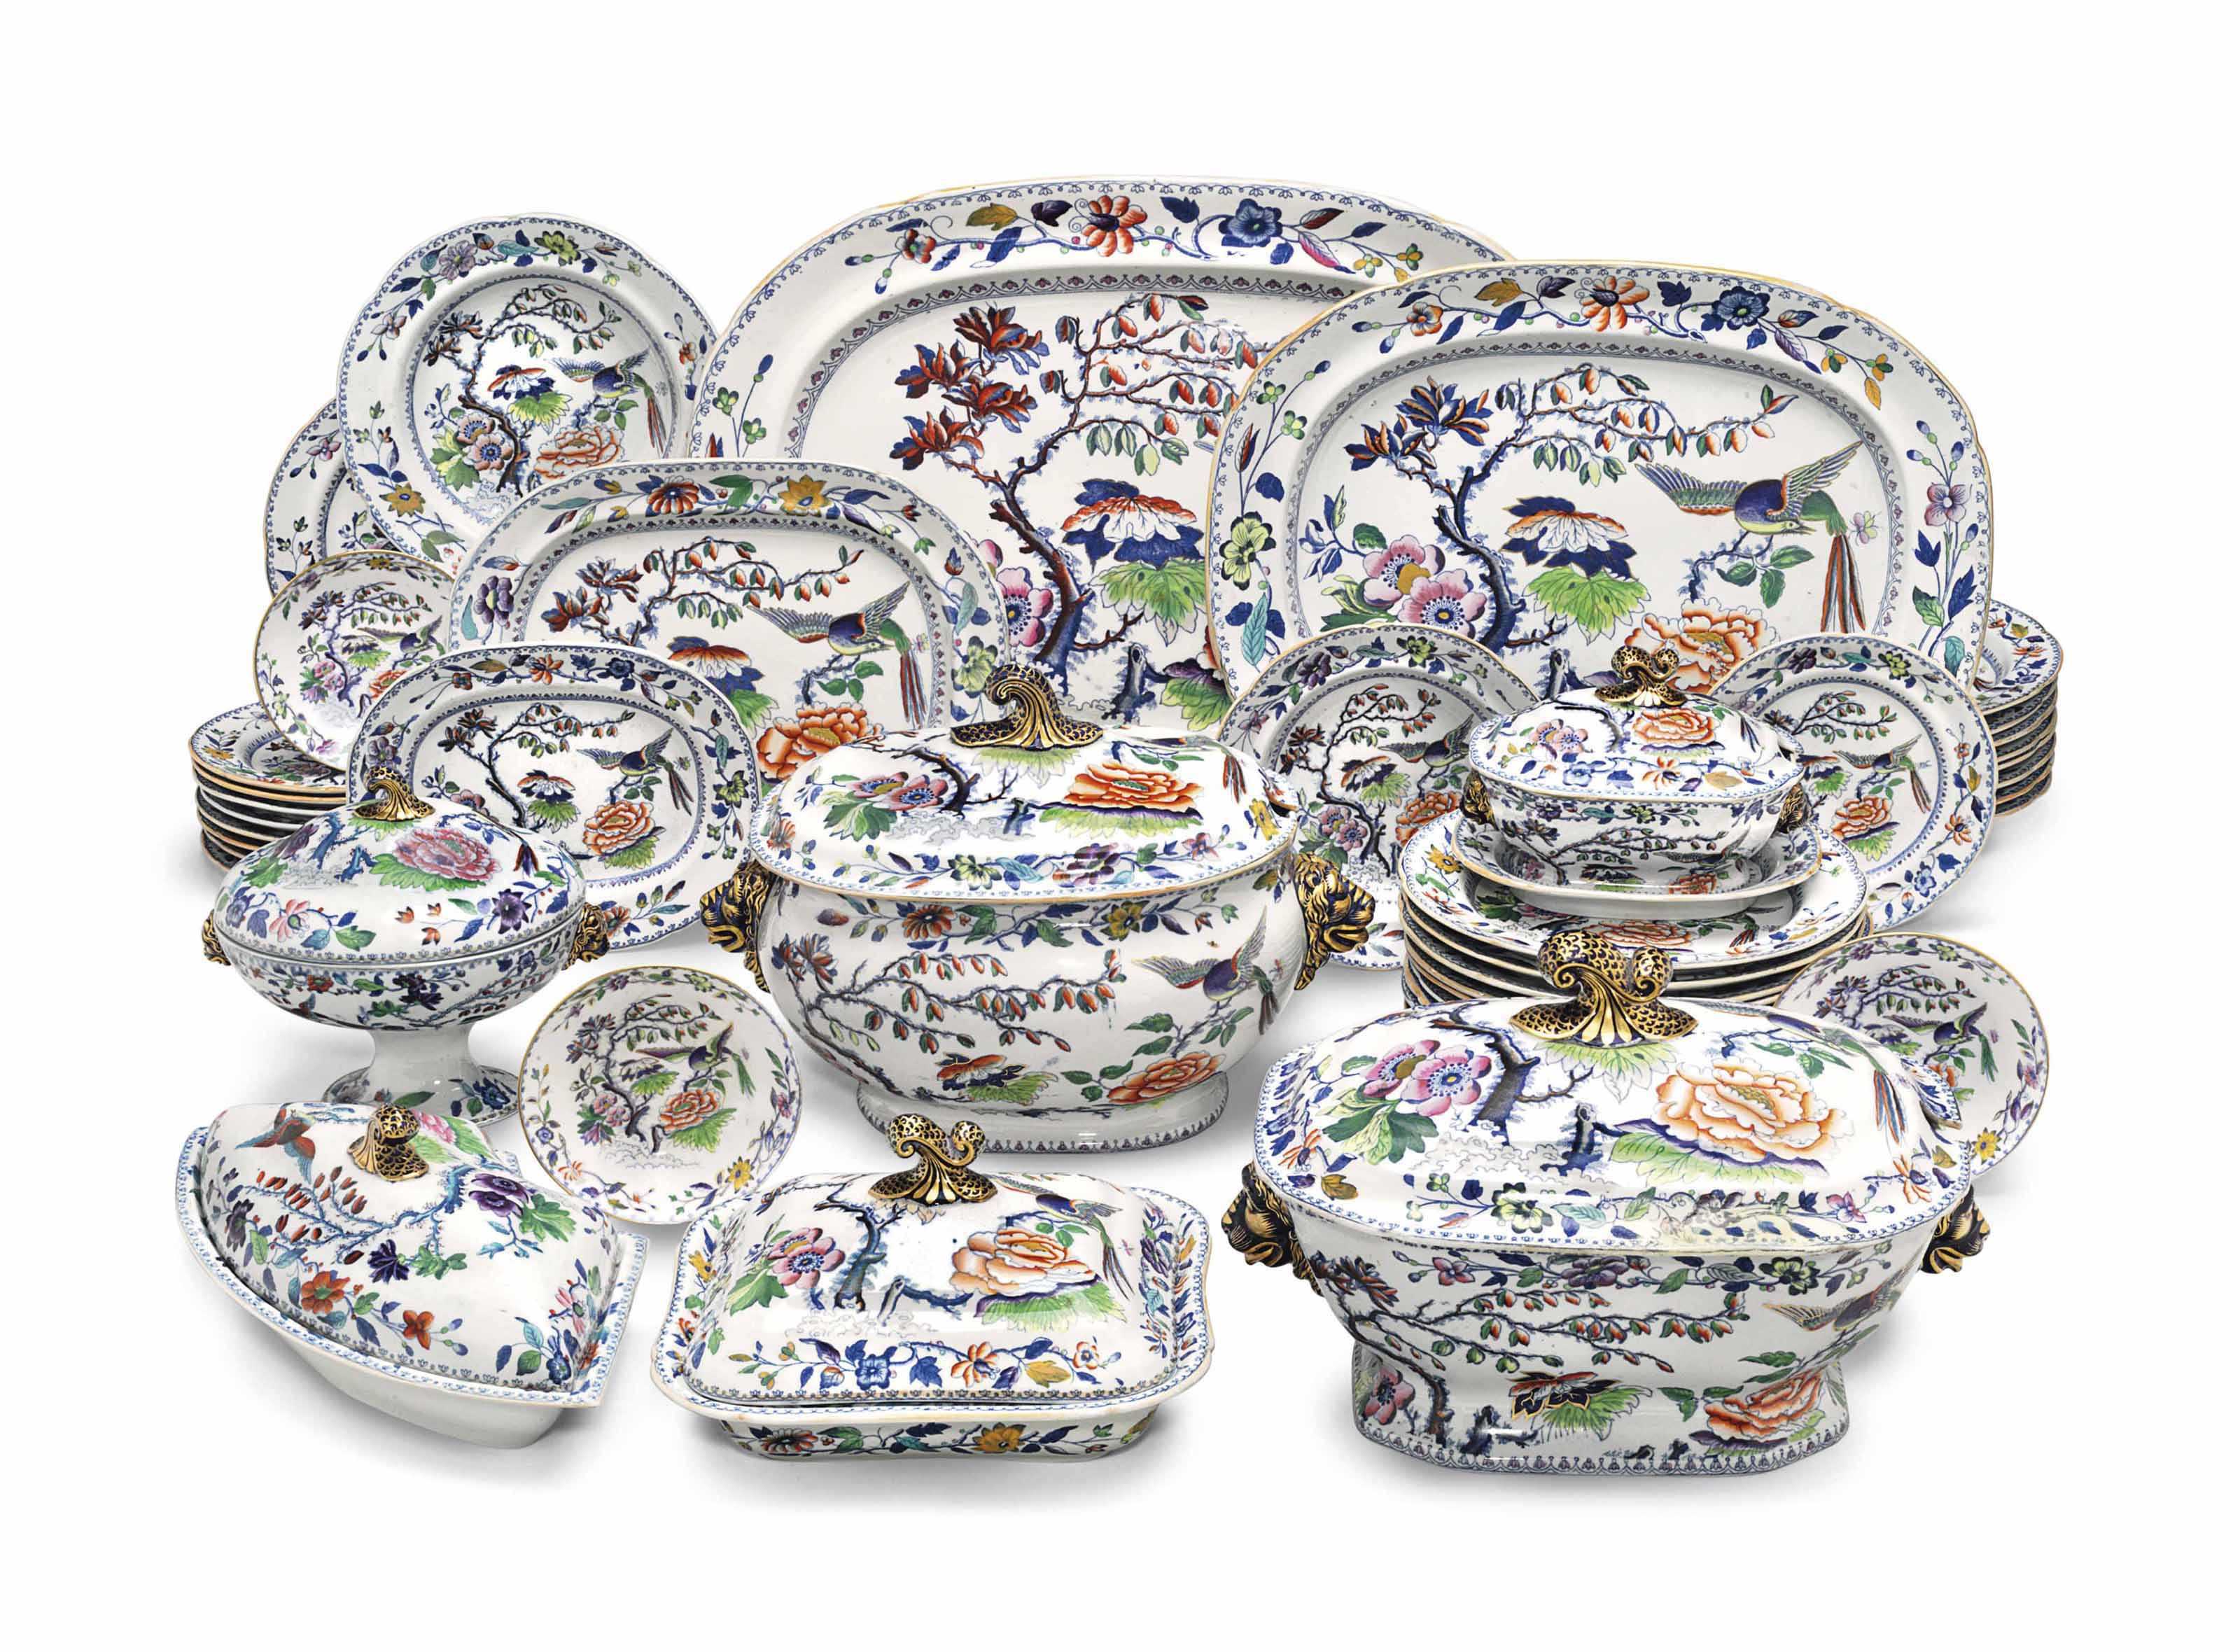 A DAVENPORT STONE CHINA IMARI PATTERN PART DINNER AND DESSERT SERVICE